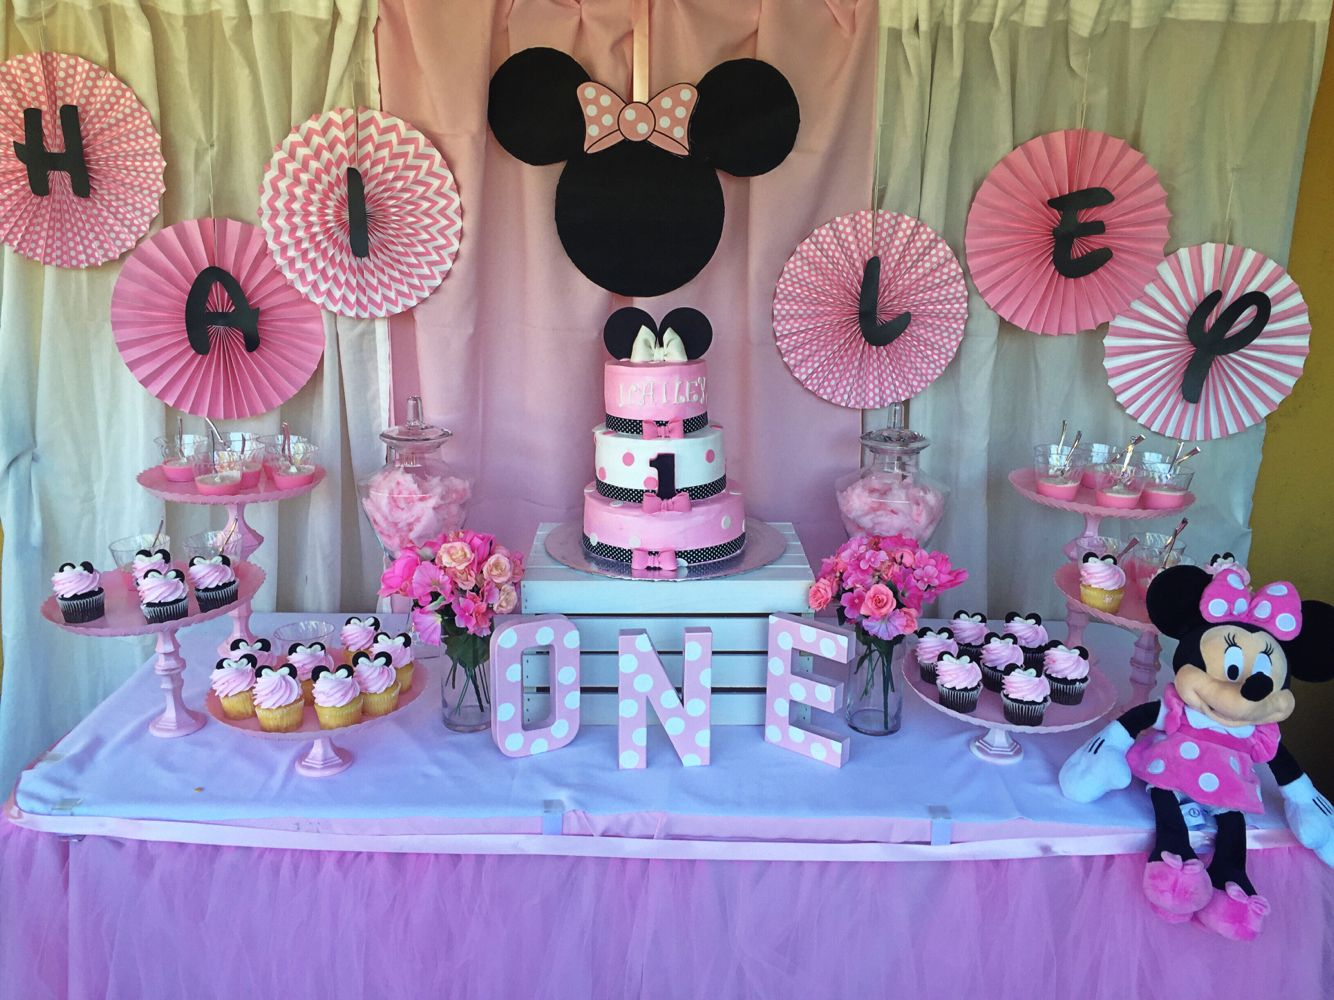 Simple Minnie Mouse Dessert Table We Did For Our Cousins First Birthday Minnie Mouse First Birthday Minnie Mouse Decorations Minnie Mouse Birthday Party